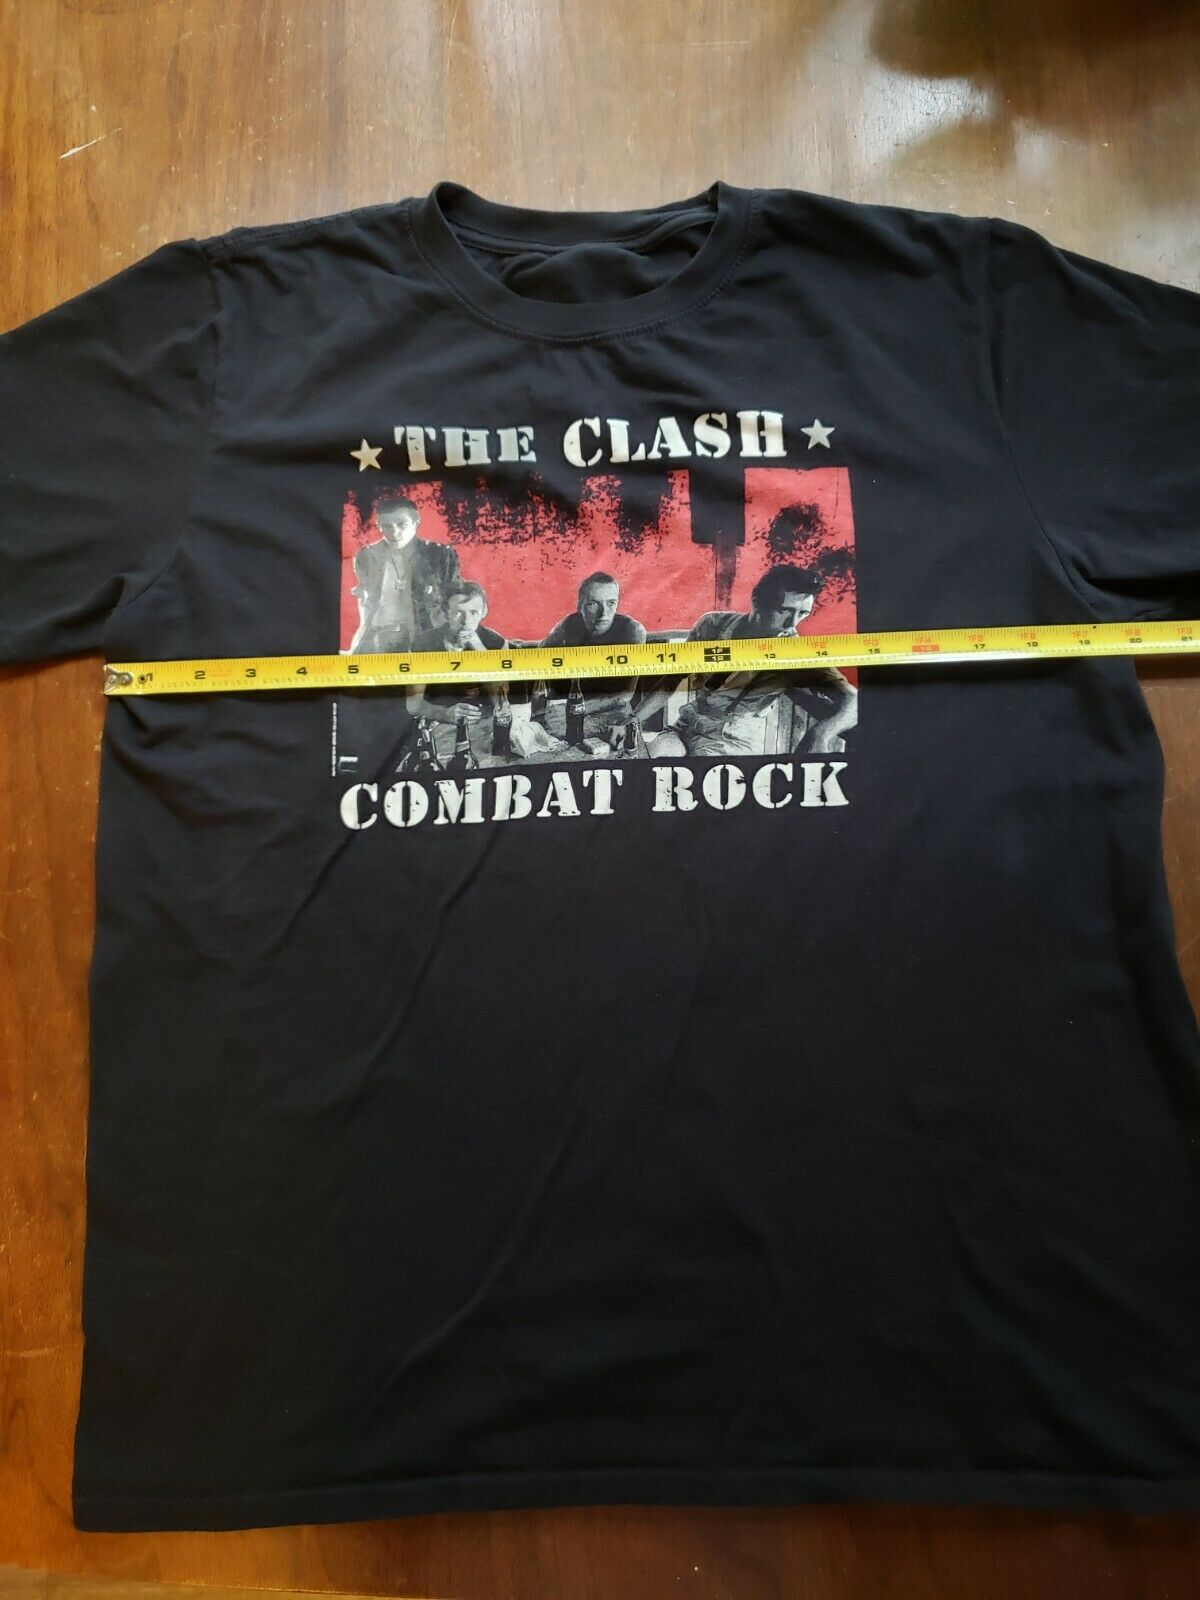 The Clash Graphic Band T Mens Large Black Shirt - image 3